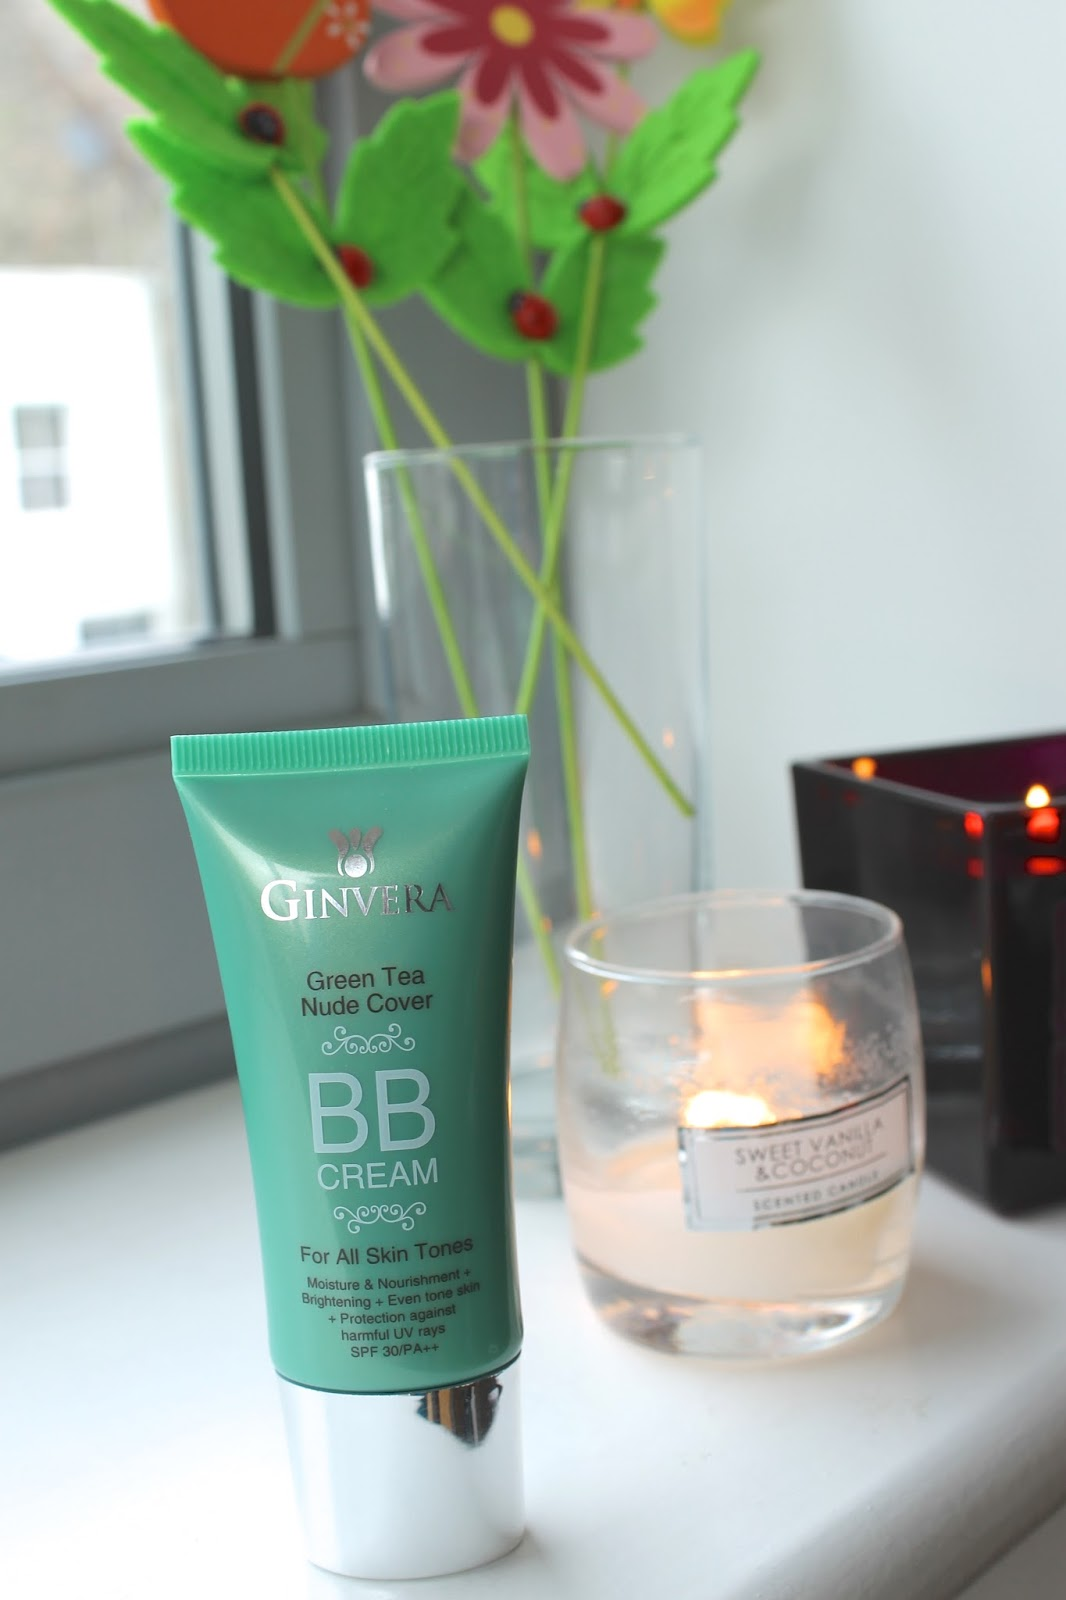 Ginvera BB Cream bec boop blog review